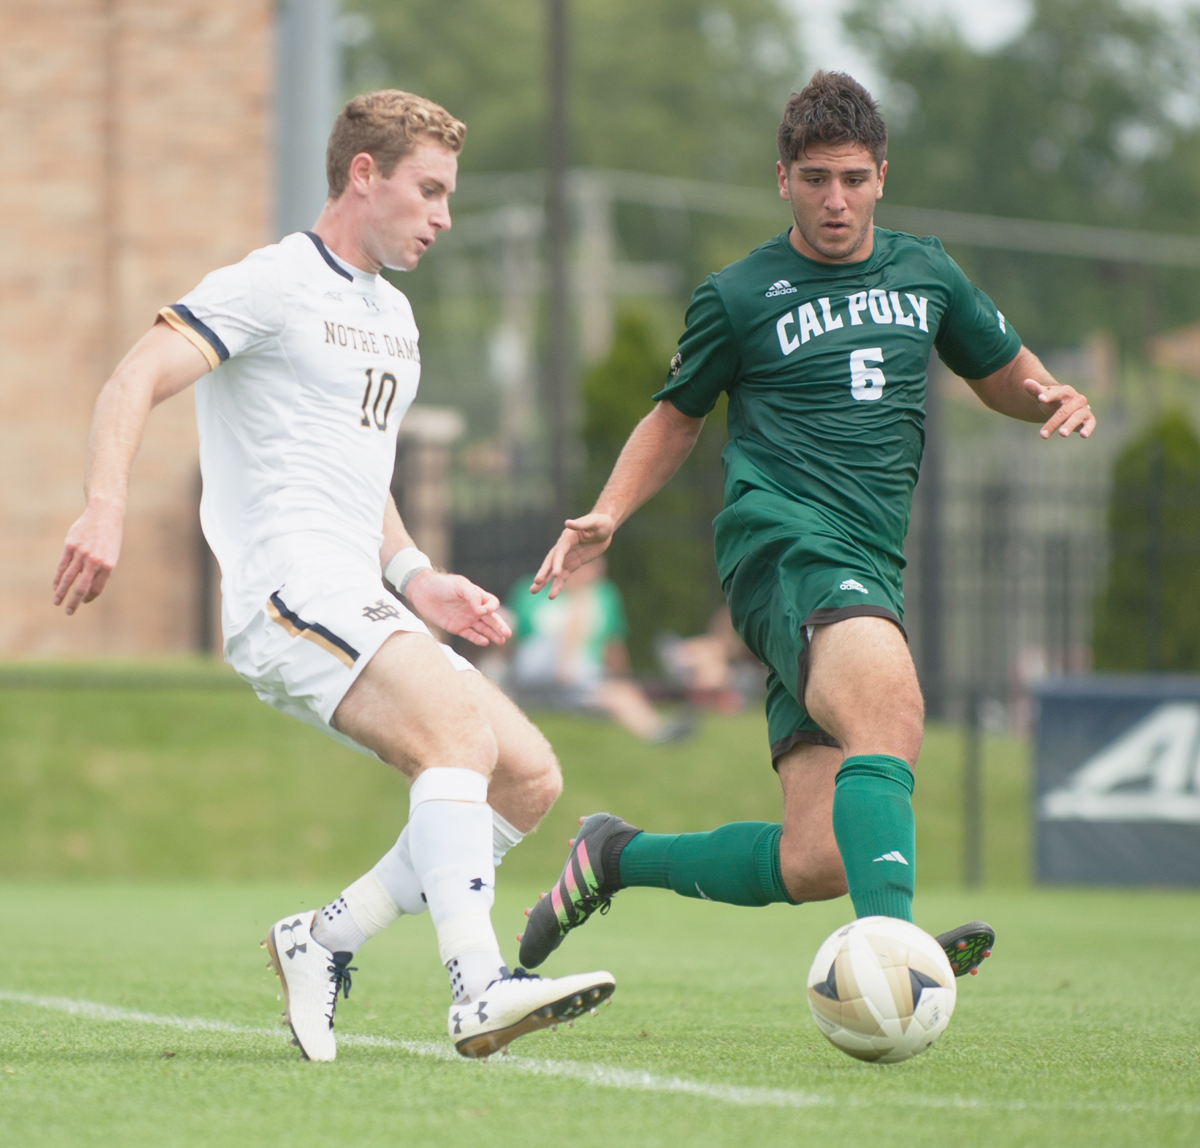 Irish senior forward Jon Gallagher takes on a Cal Poly opponent during Notre Dame's Mike Berticelli Memorial Tournament on Aug. 25 at Alumni Stadium. The Irish won 2-1 in double overtime.